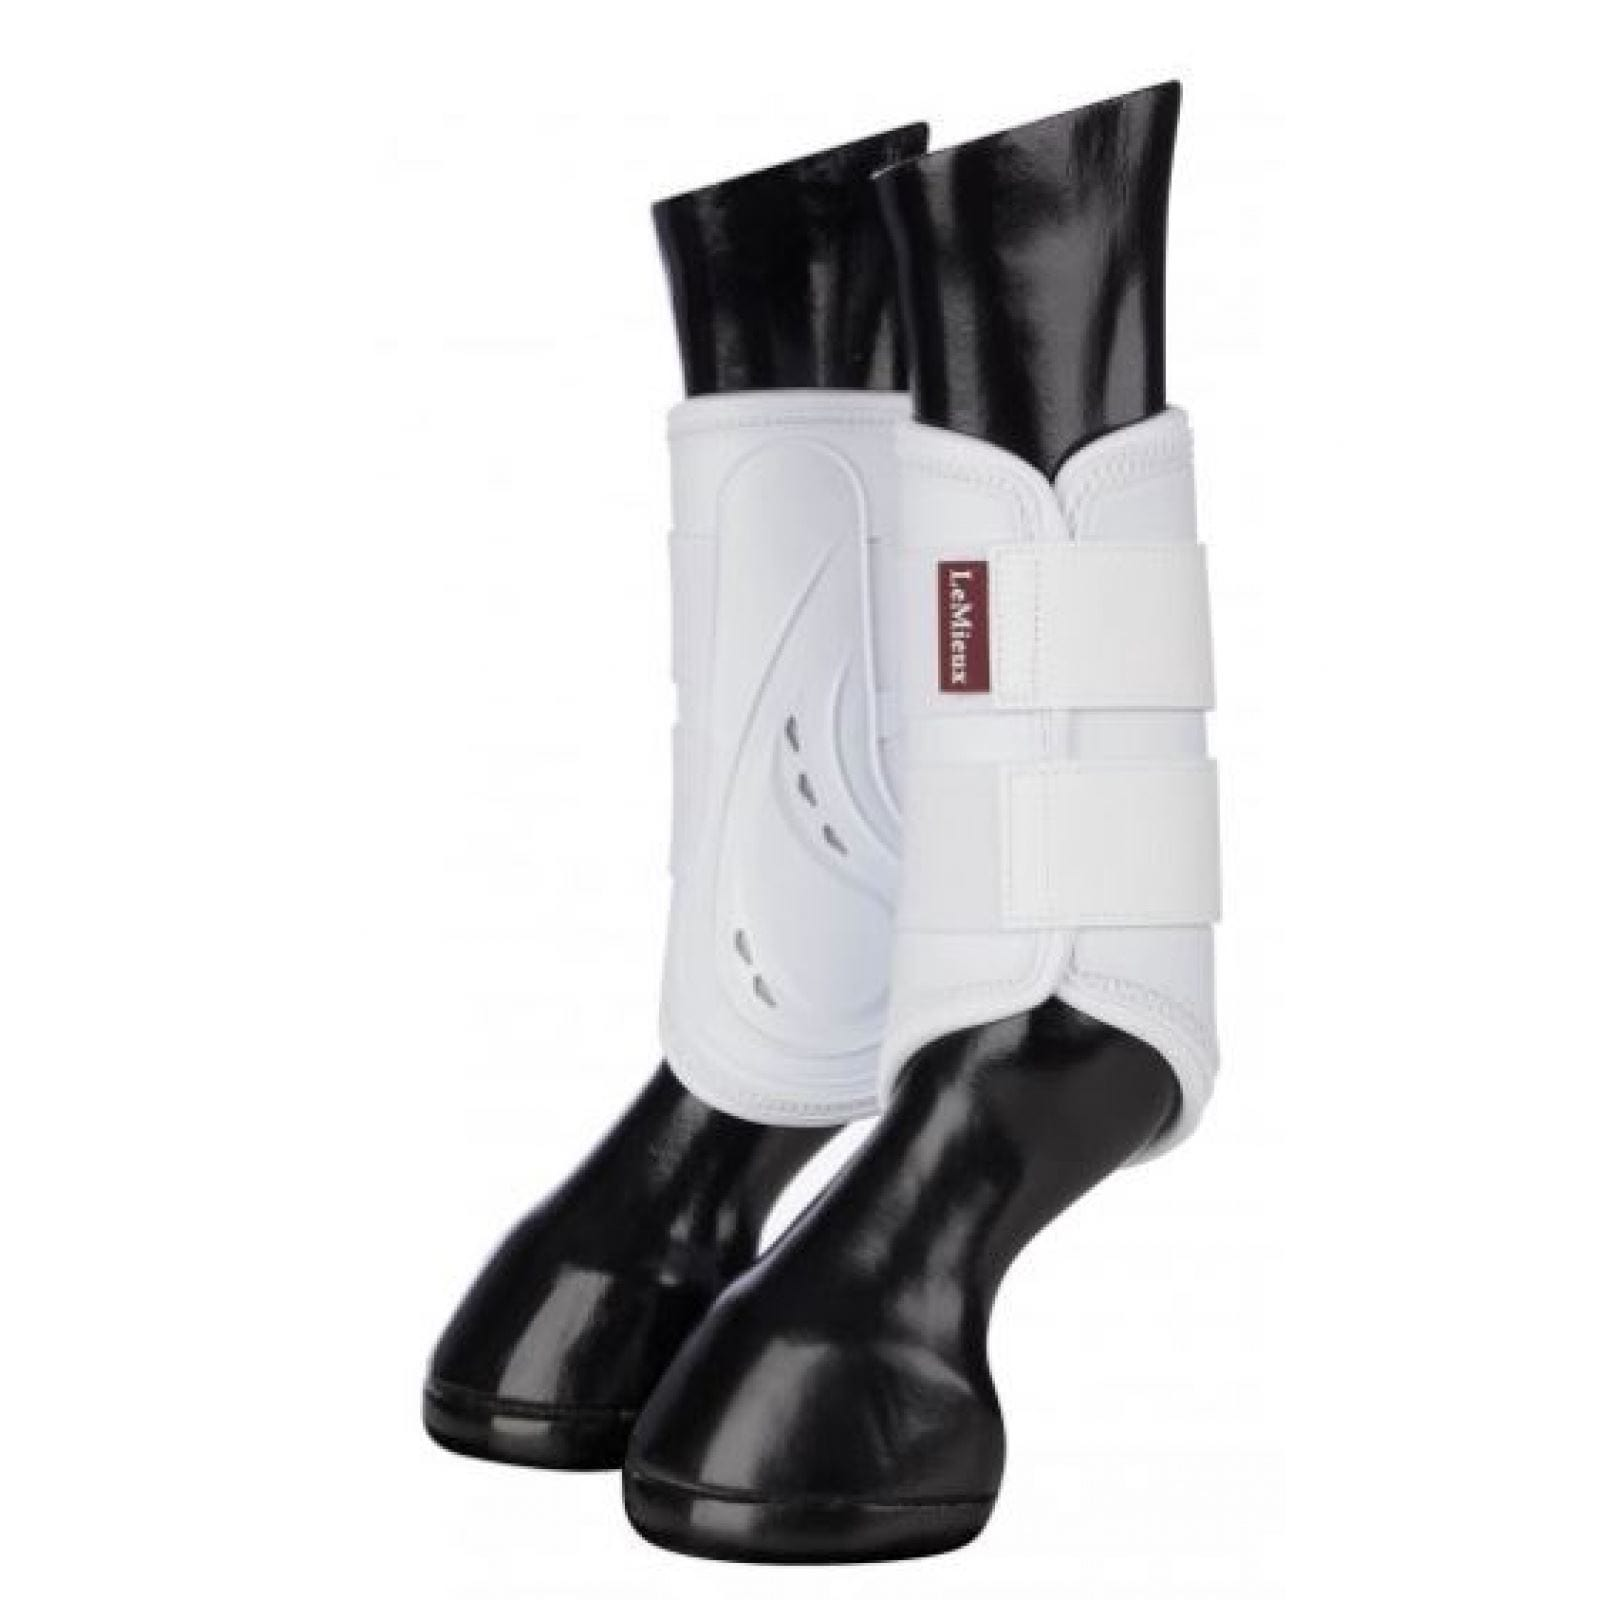 LeMieux ProShell Brushing Boots - Dressage Schooling Hacking Turnout